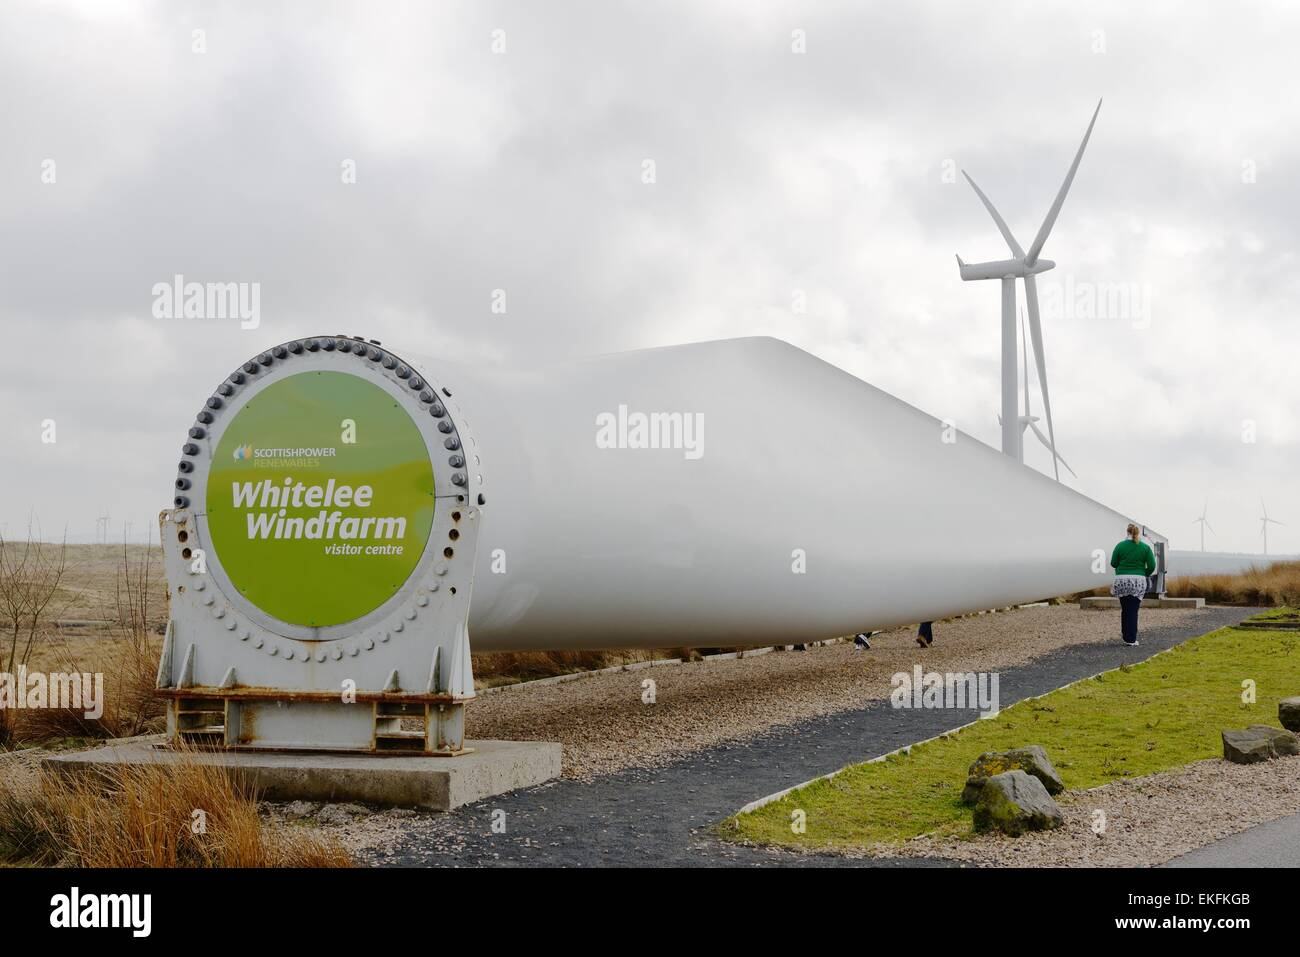 A single blade from a turbine at the Whitelee windfarm in Scotland, UK - Stock Image